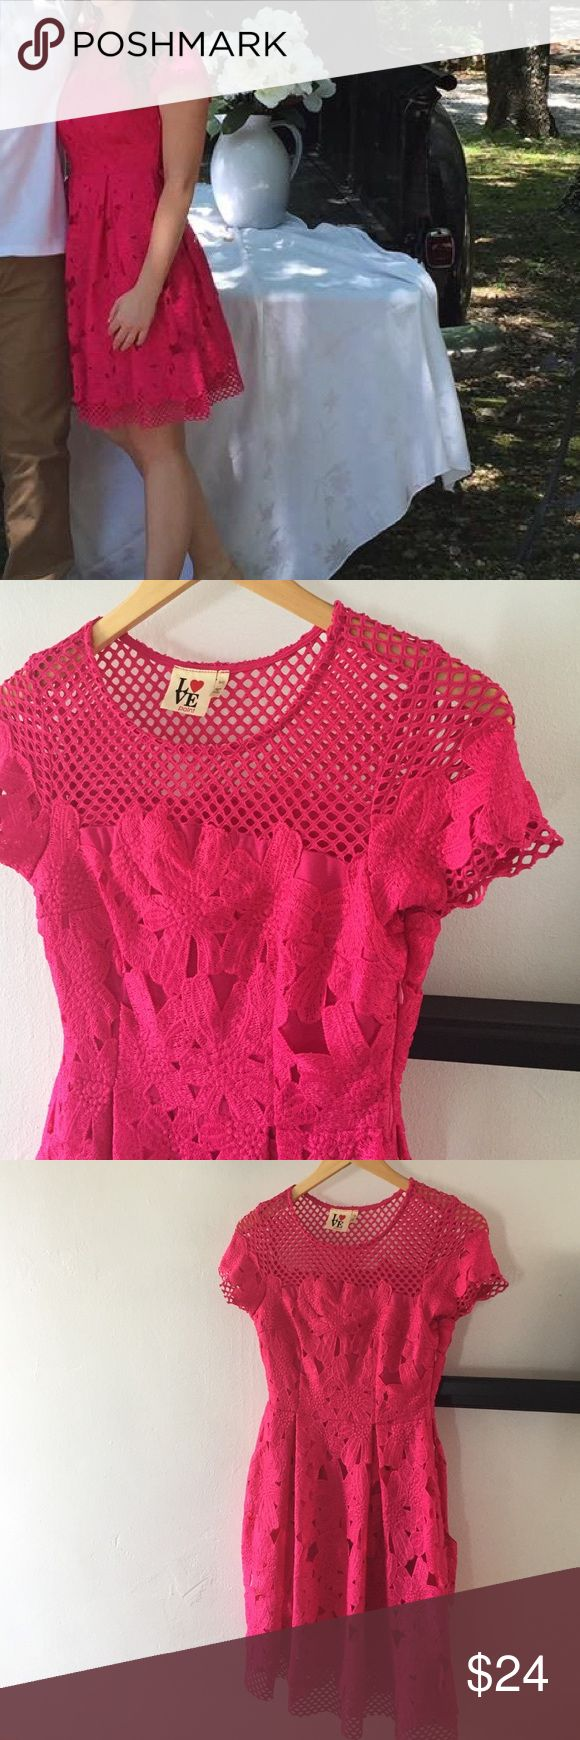 Gorgeous pink dress So beautiful and vibrant! Only worn once to a wedding and it's a shame for this to be just hanging in my closet. Beautiful detail at neckline and hem, side zip. Fuschia pink color and true to size. Dresses